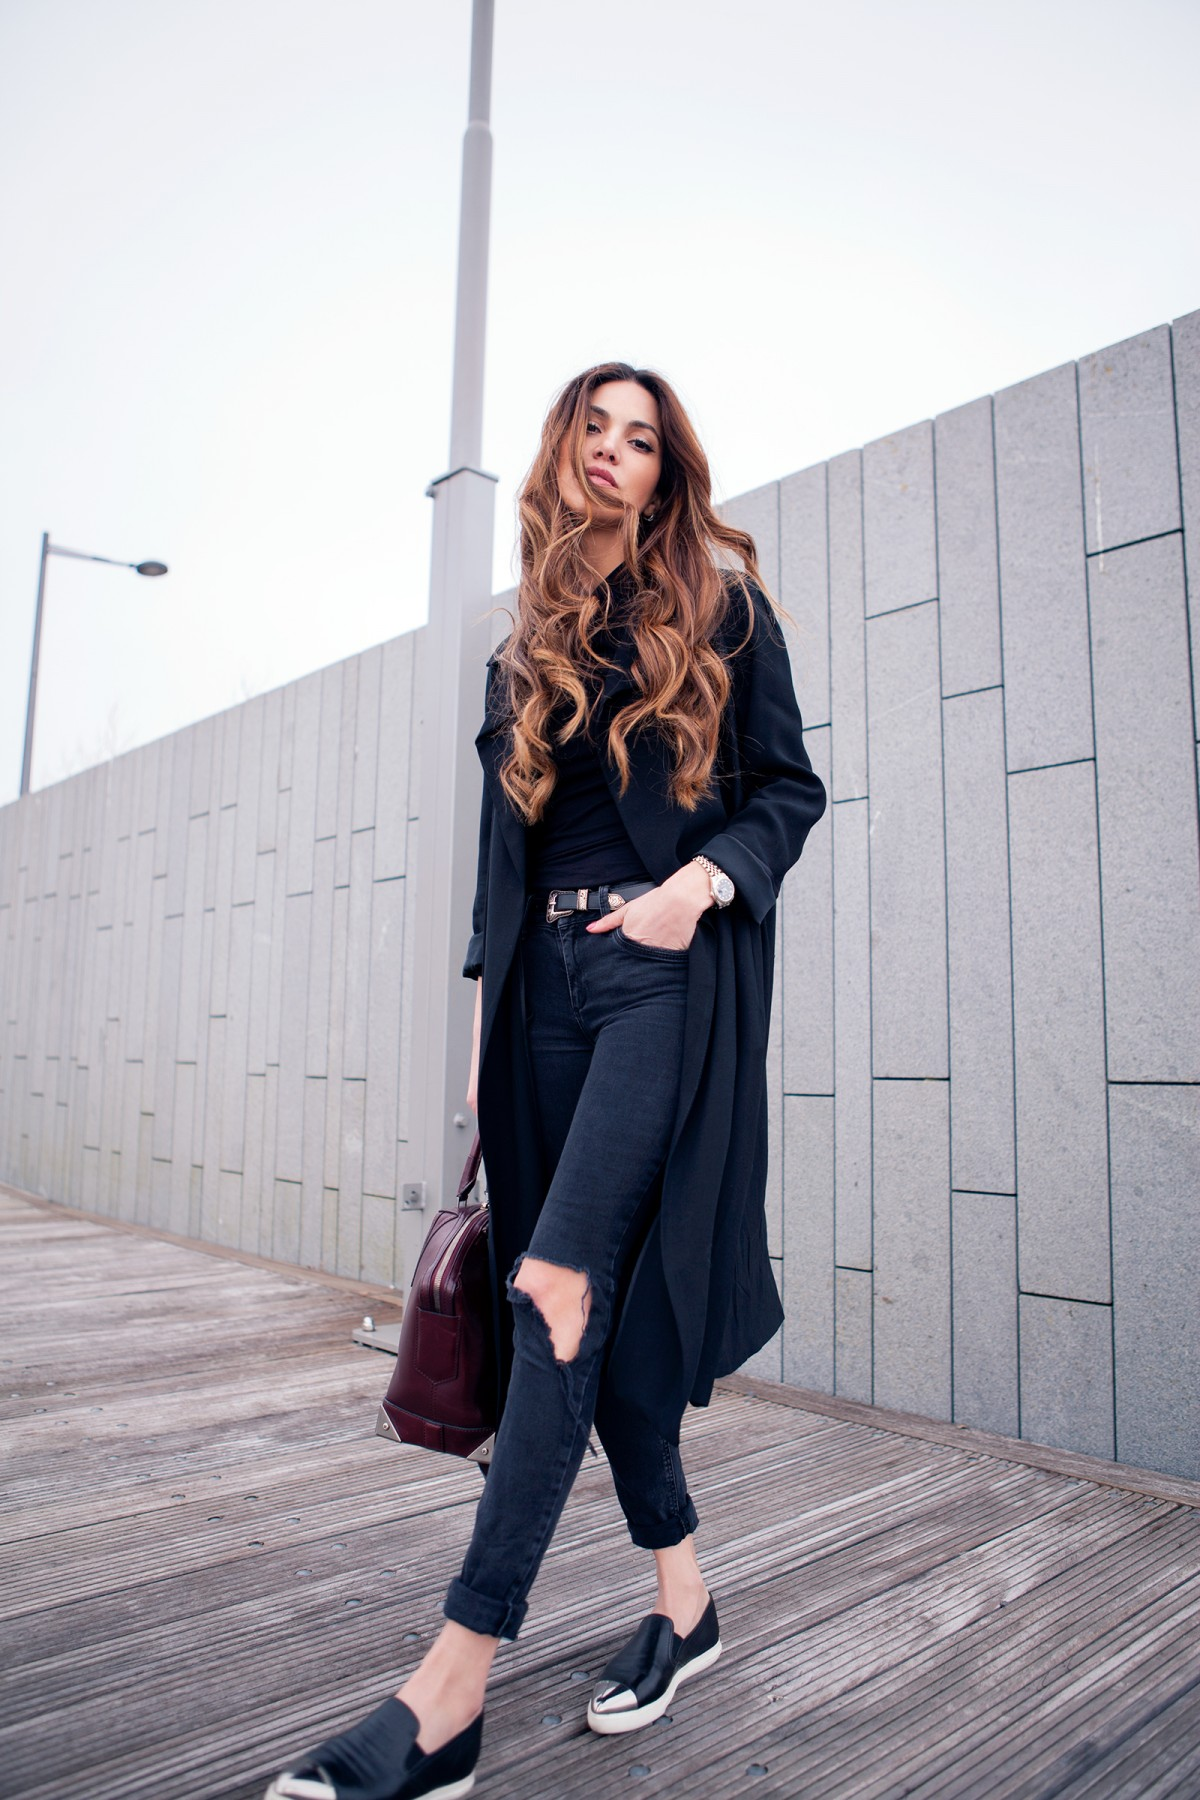 Via Just The Design: Negin Mirsalehi is wearing an oversized black coat with River Island skinny jeans with a pair of black Miu Miu pumps